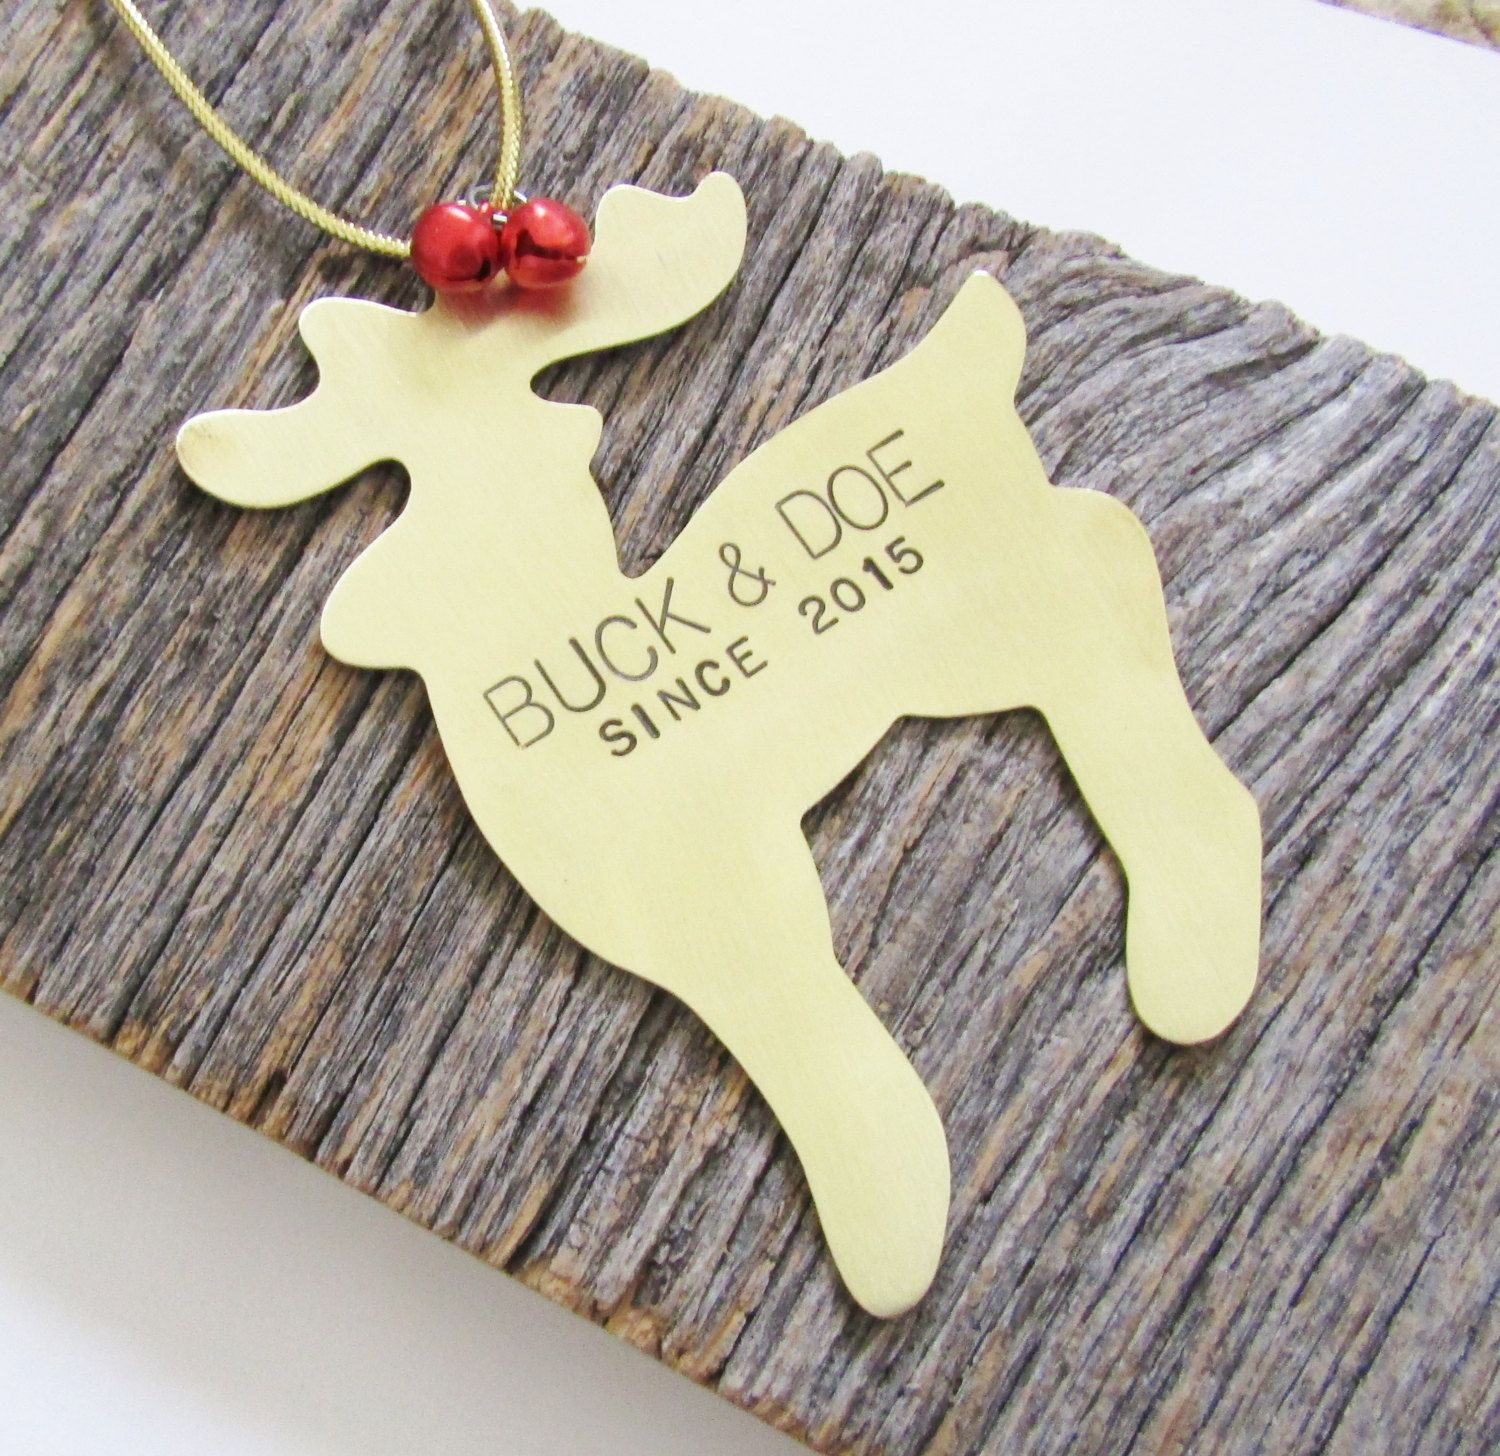 Newlywed ornament - Mr And Mrs Ornament Christmas Ornament Wedding Ornament Mr And Mrs Christmas Ornament Personalized Newlywed Buck And Doe Since 2017 Family